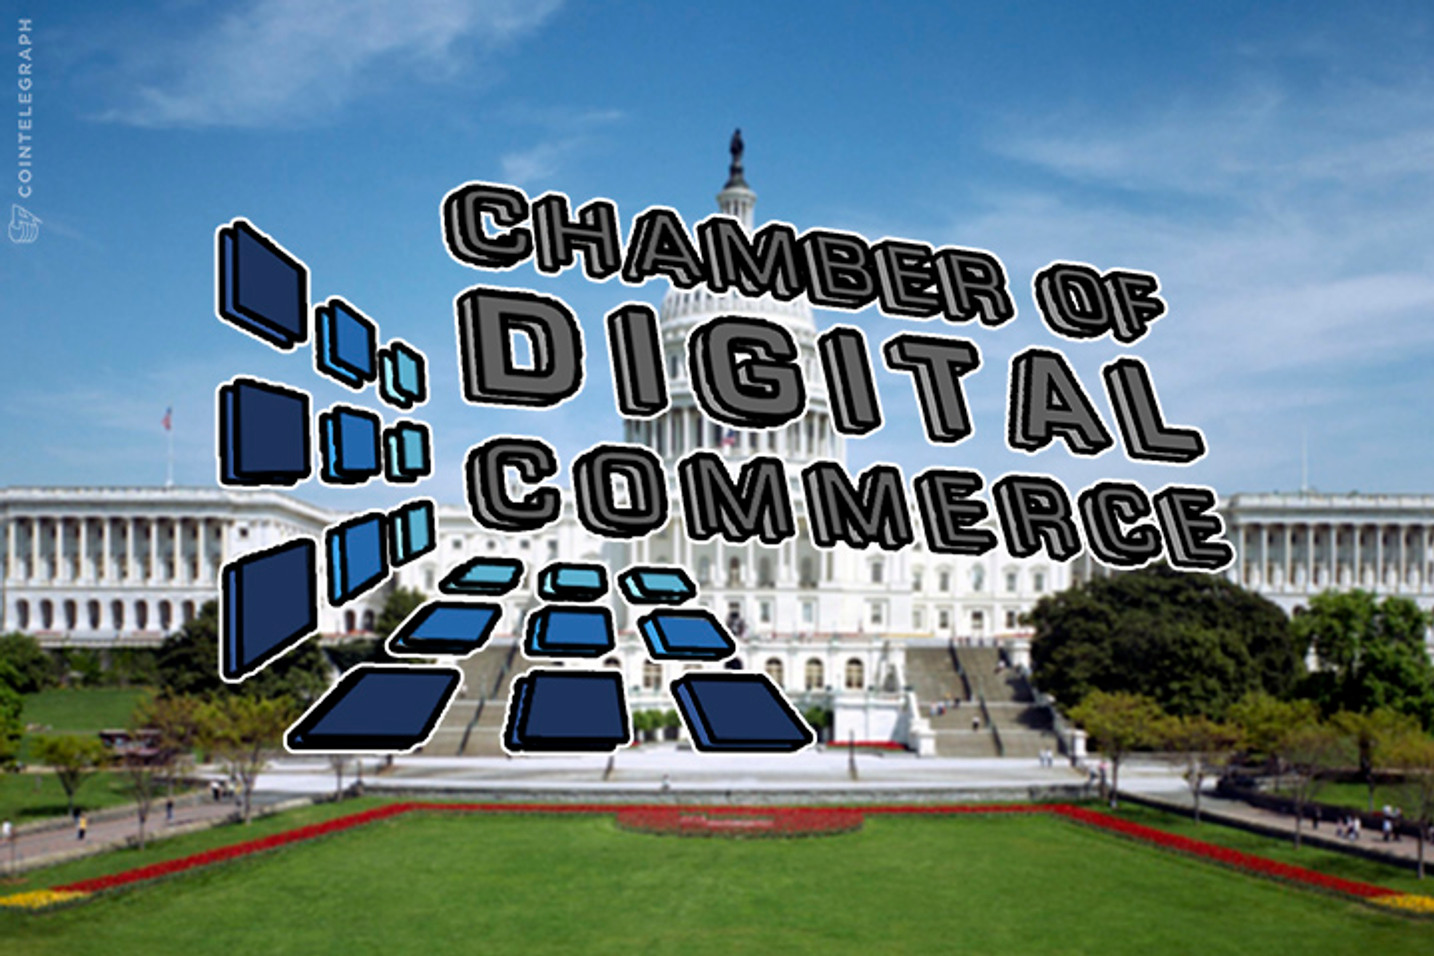 ANNOUNCING: The Foundation of the Chamber of Digital Commerce